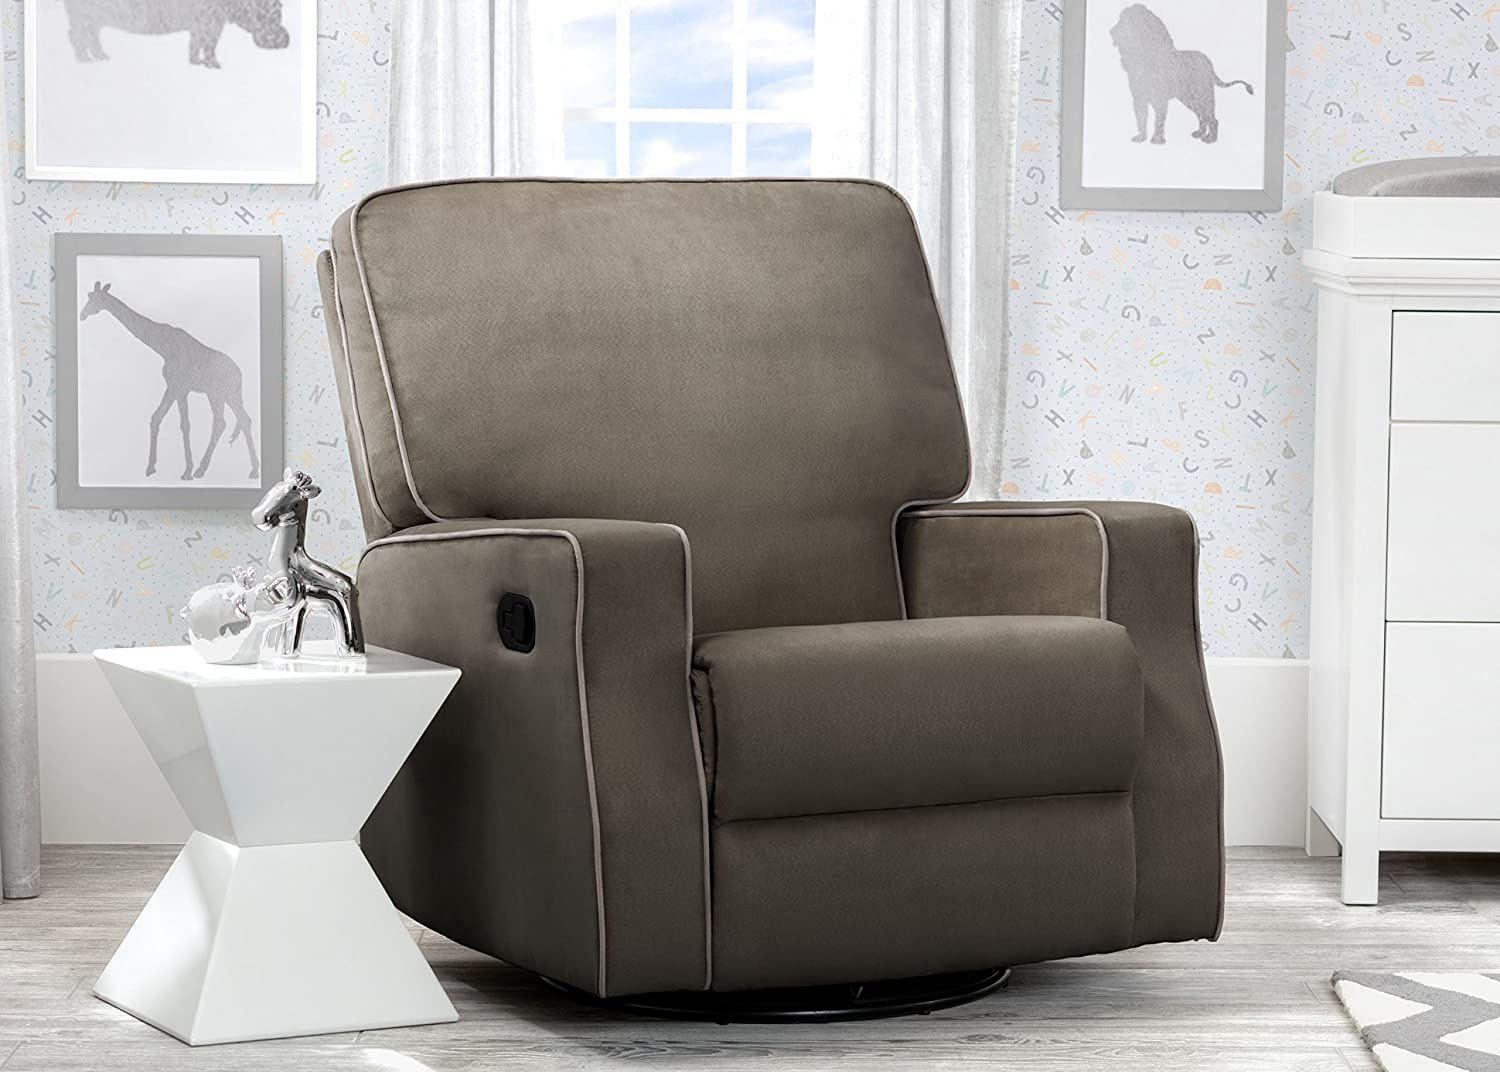 Delta Children Caleb Nursery Recliner Glider Swivel Chair, Graphite Dove Grey Welt